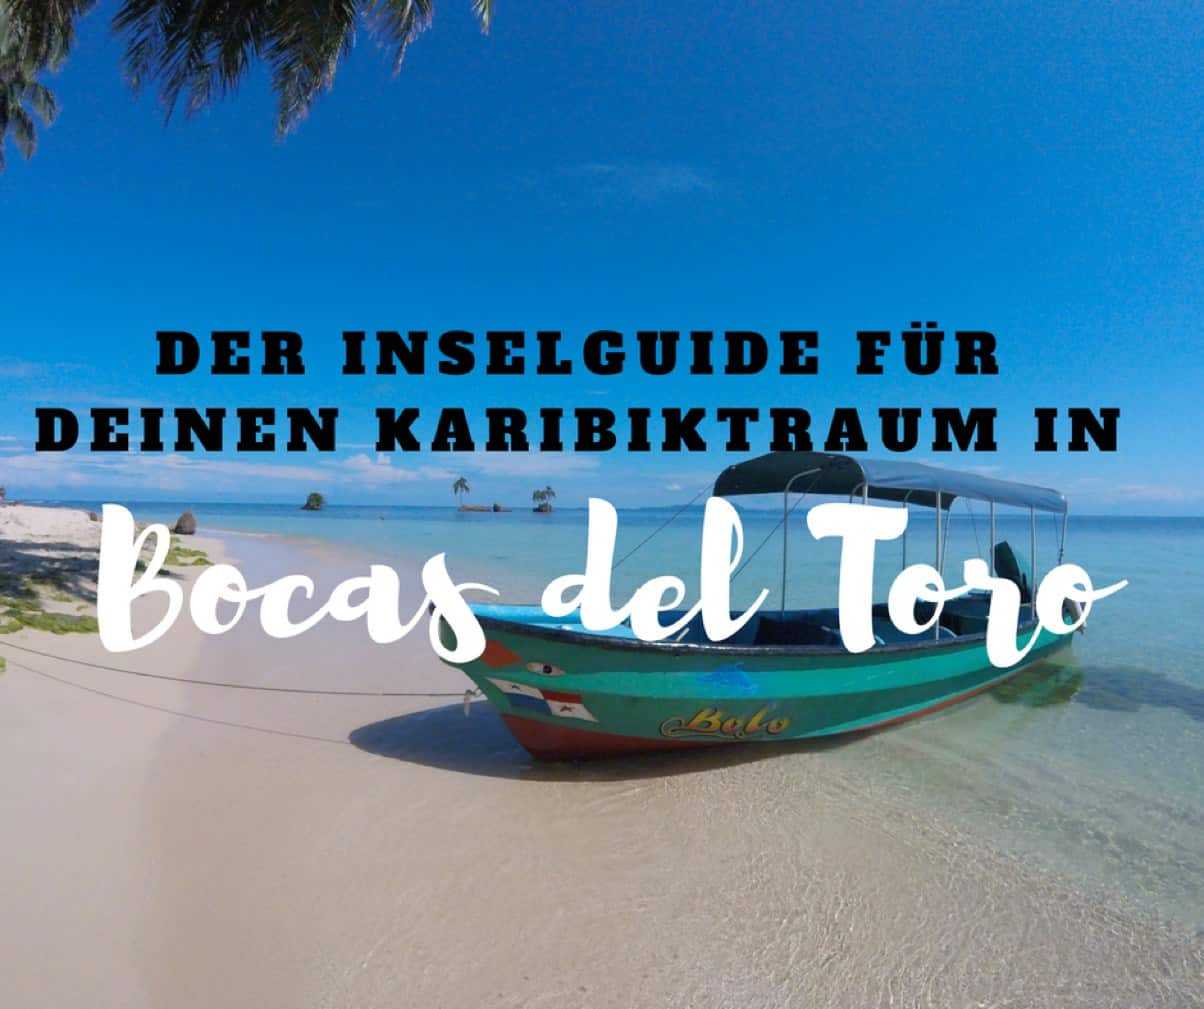 bocas del toro girls Bocas del toro bachelor party – (5 days, 4 nights) an unbeatable bachelor party combining the best of panama city and bocas del toro – includes round trip domestic airfare, exclusive.